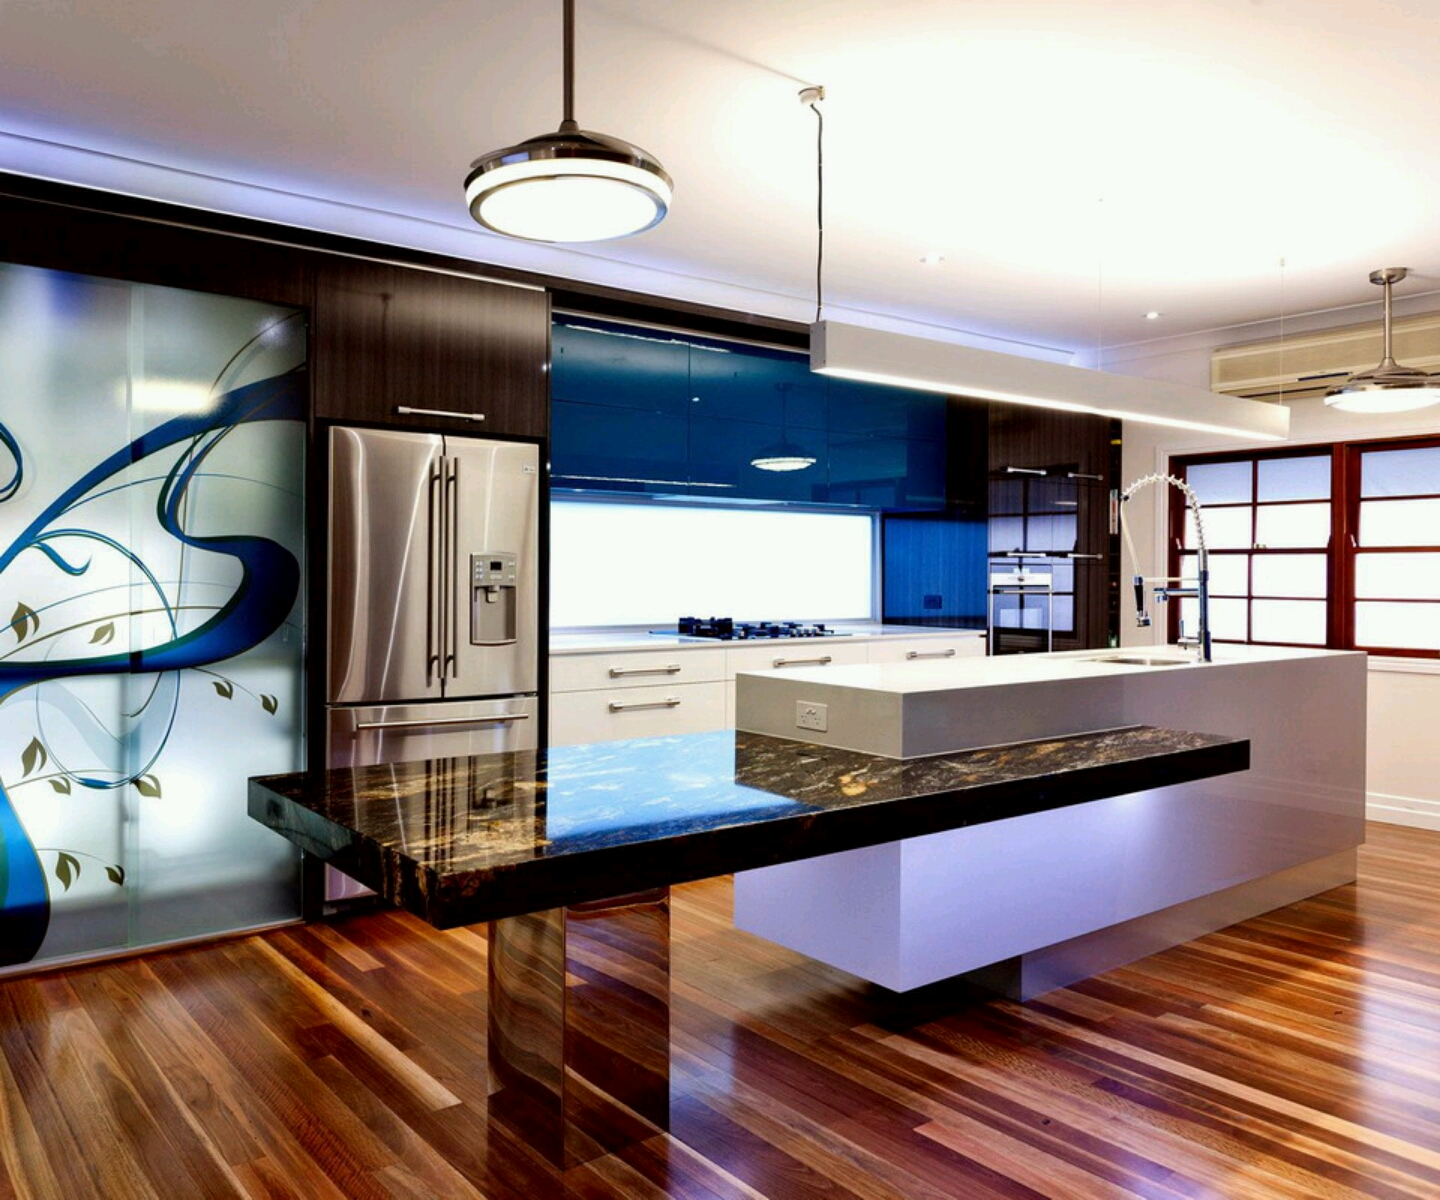 Latest Home Decorating Ideas Interior: New Home Designs Latest.: Ultra Modern Kitchen Designs Ideas